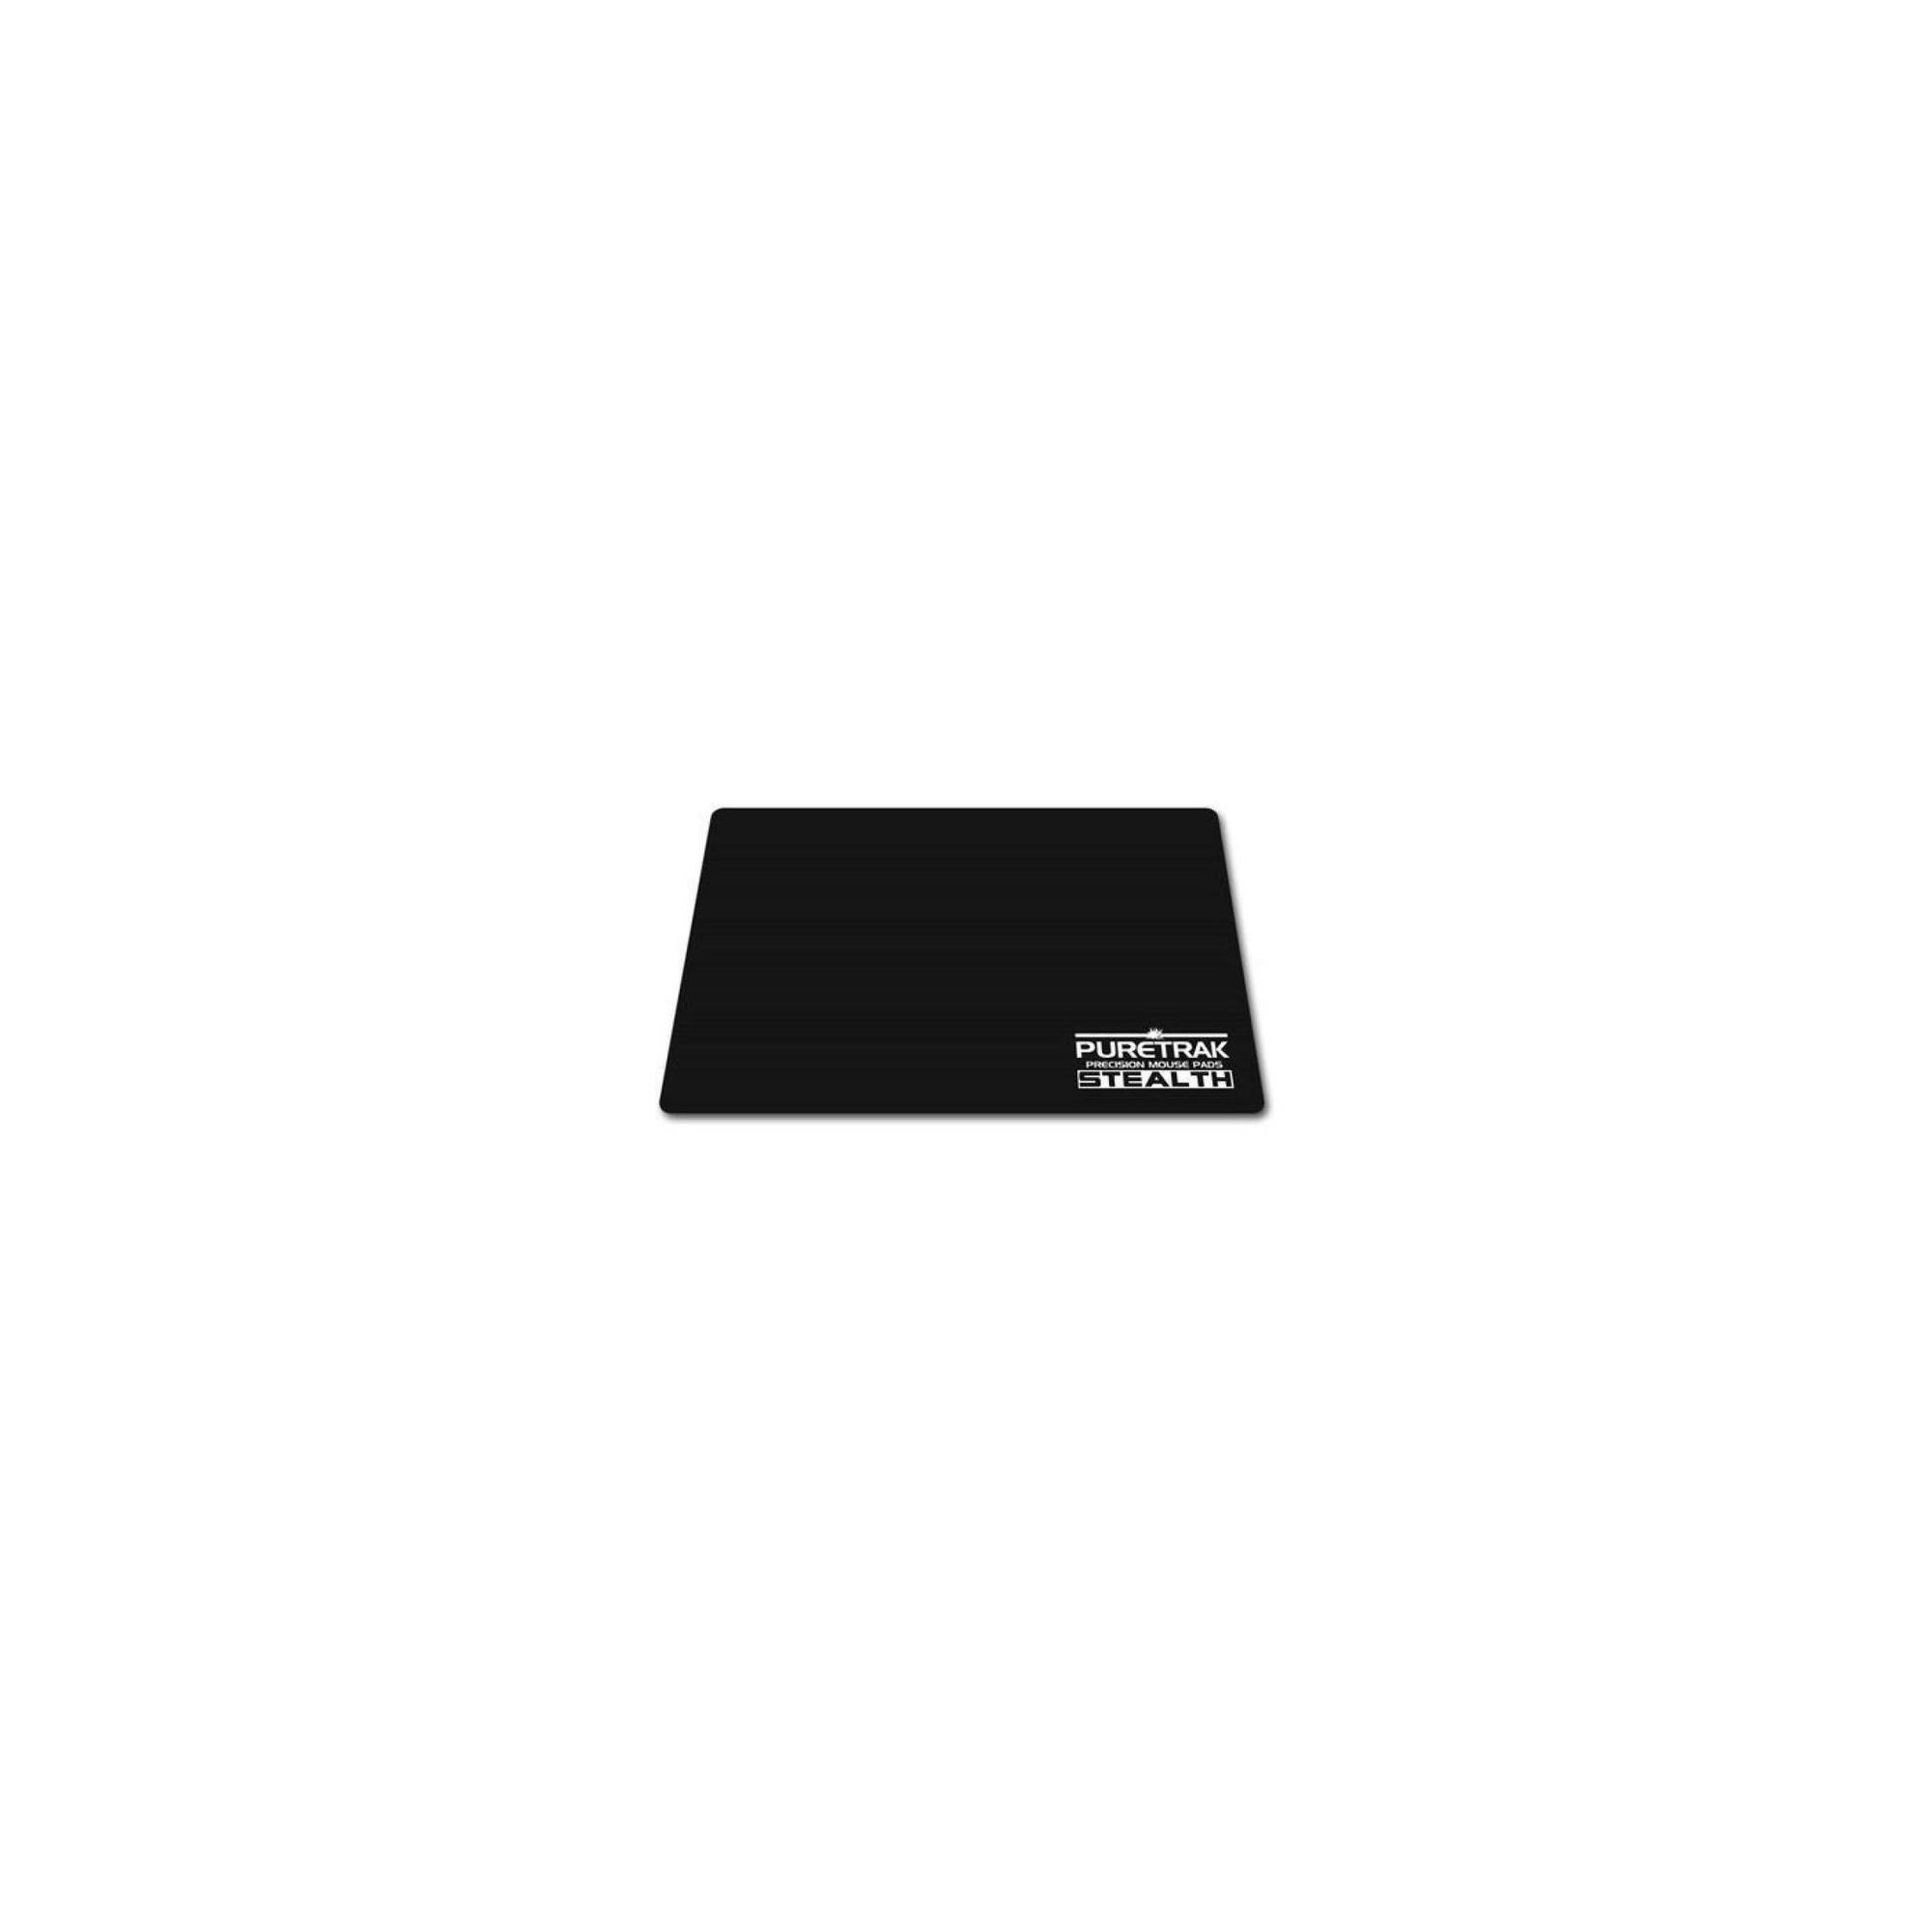 PURETRAK Stealth Cloth Gaming Mousepad MP-STEALTH at Tesco Direct